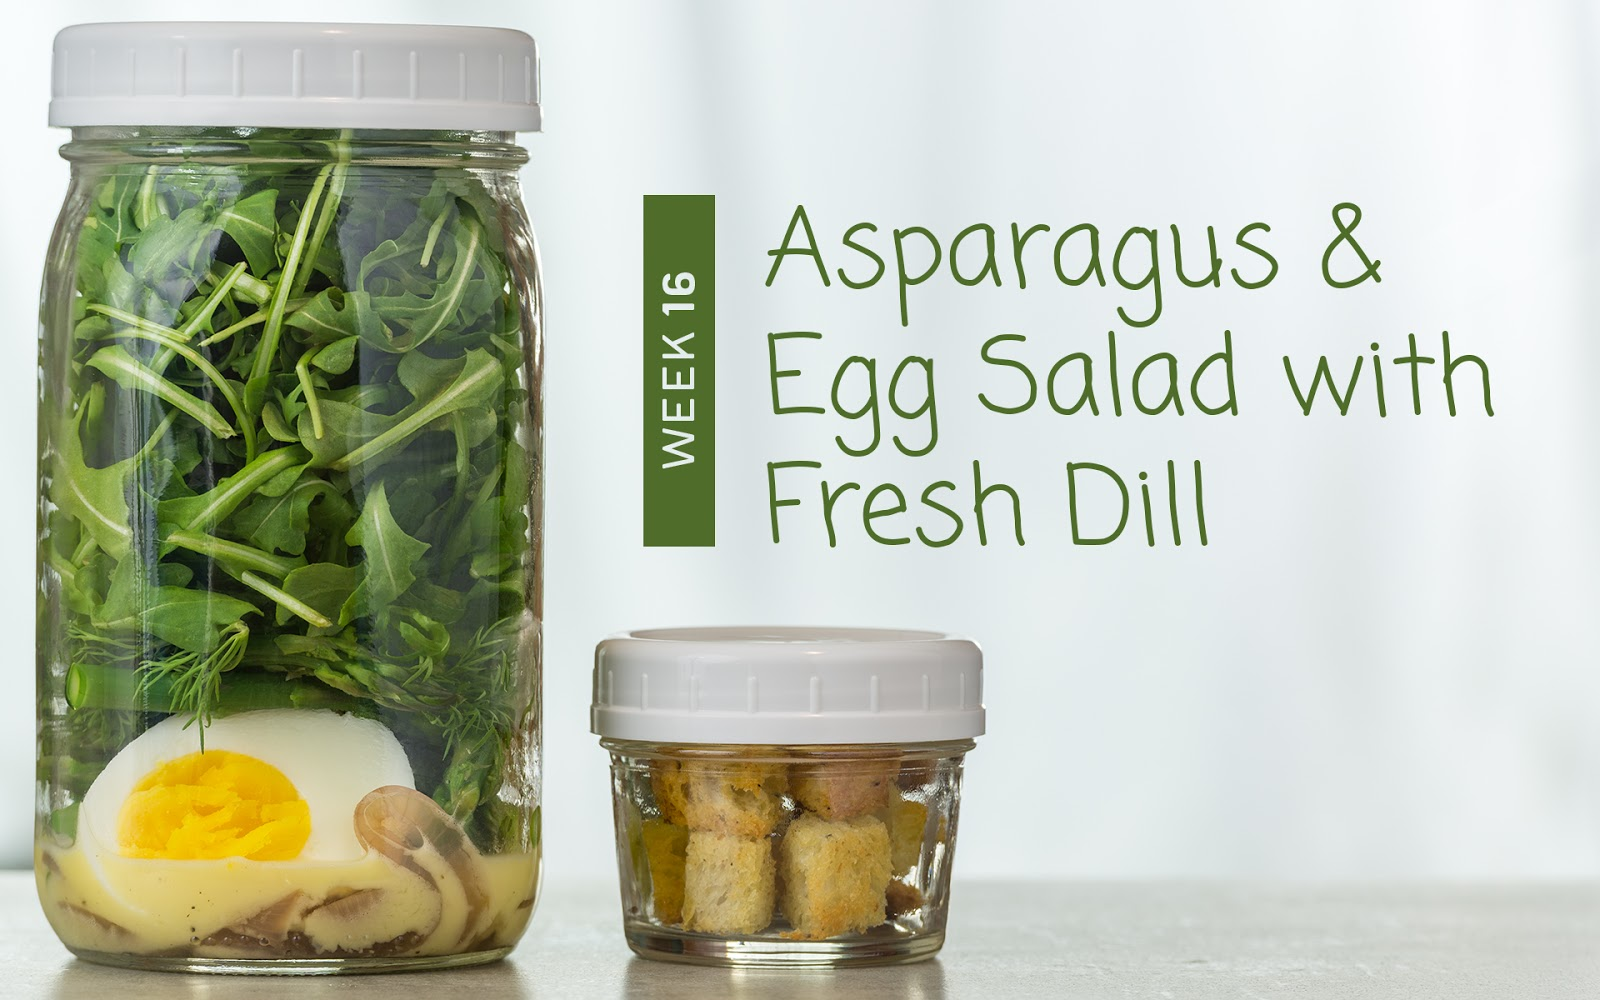 FOOD SNOB: Asparagus and Egg Salad with Fresh Dill